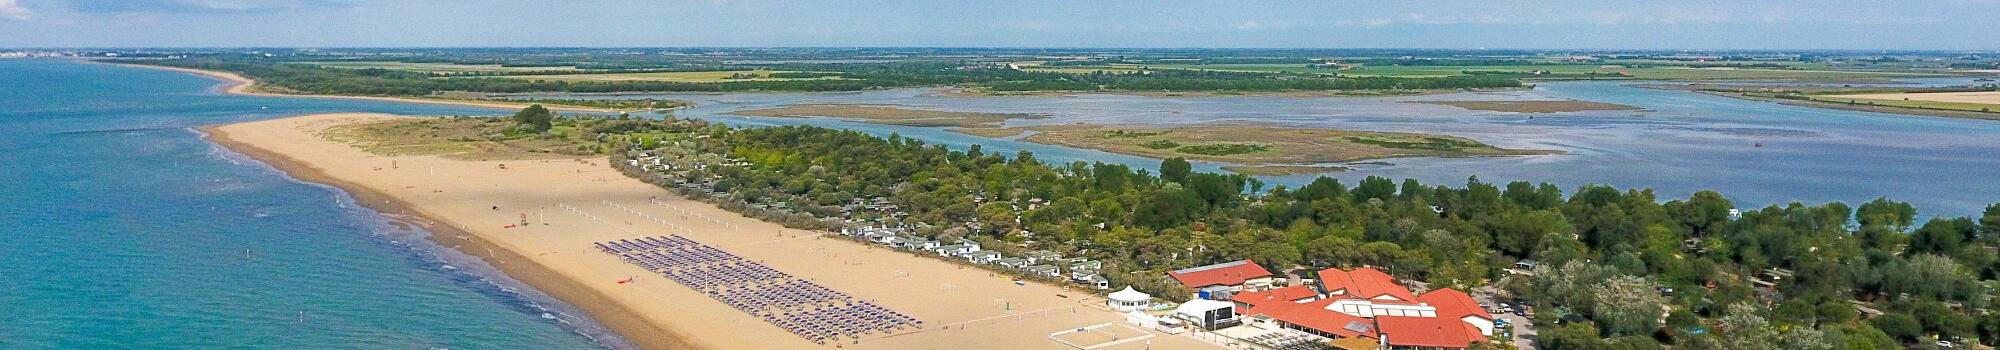 Special short midweek stays in Bibione in mobile home or glamping tent